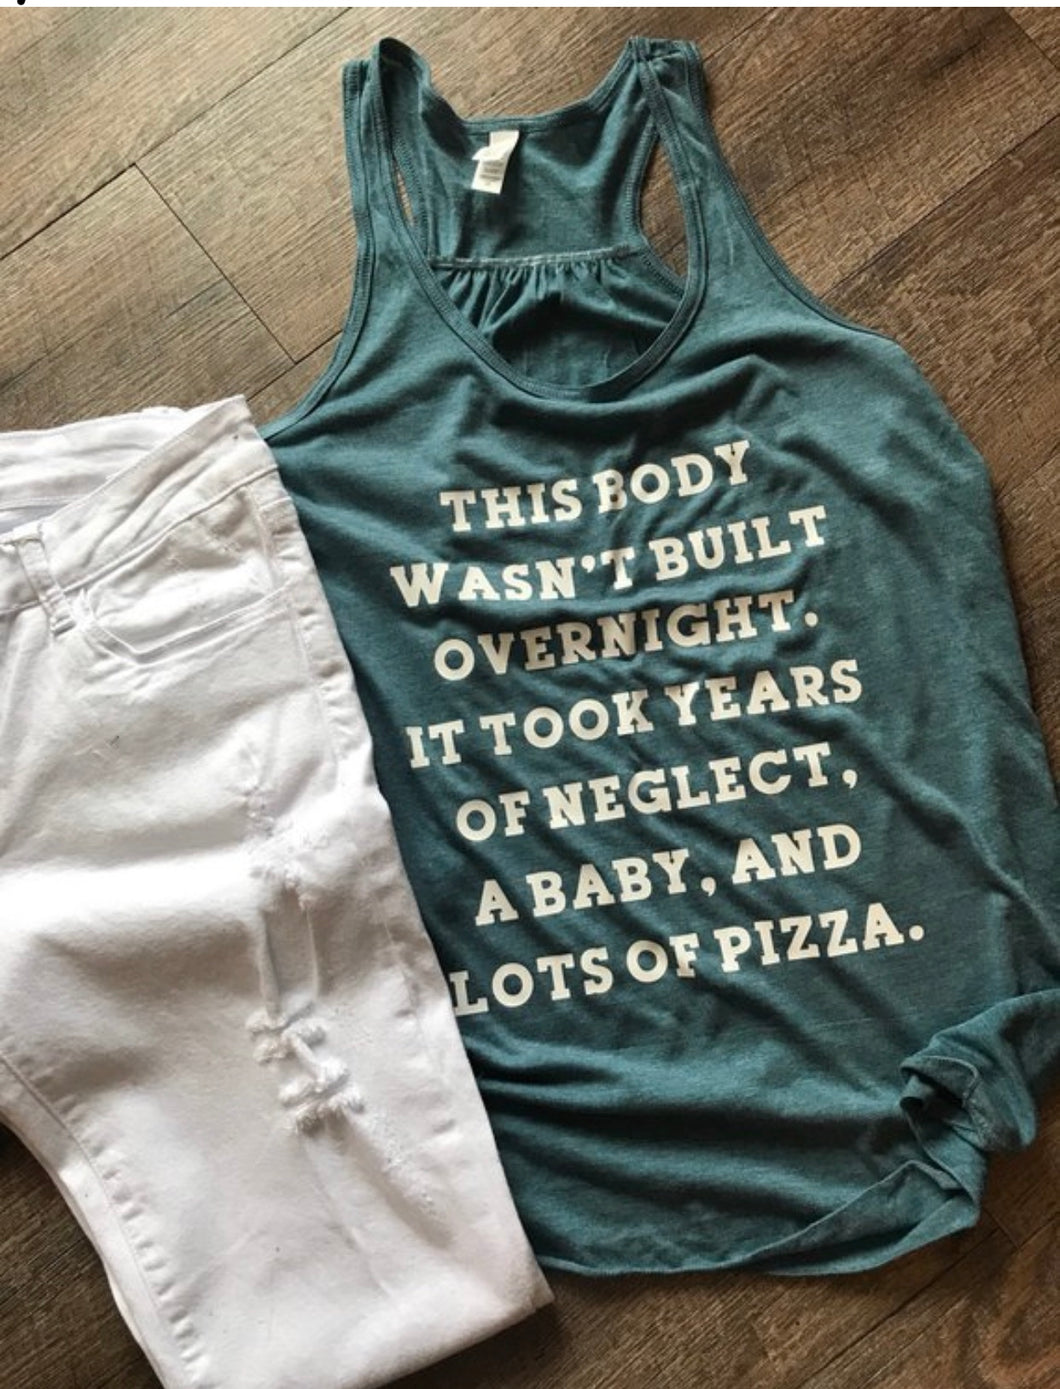 This body wasn't built overnight, it took years of neglect, a baby and lots of pizza funny graphic tee tank top. Gift. - Mavictoria Designs Hot Press Express